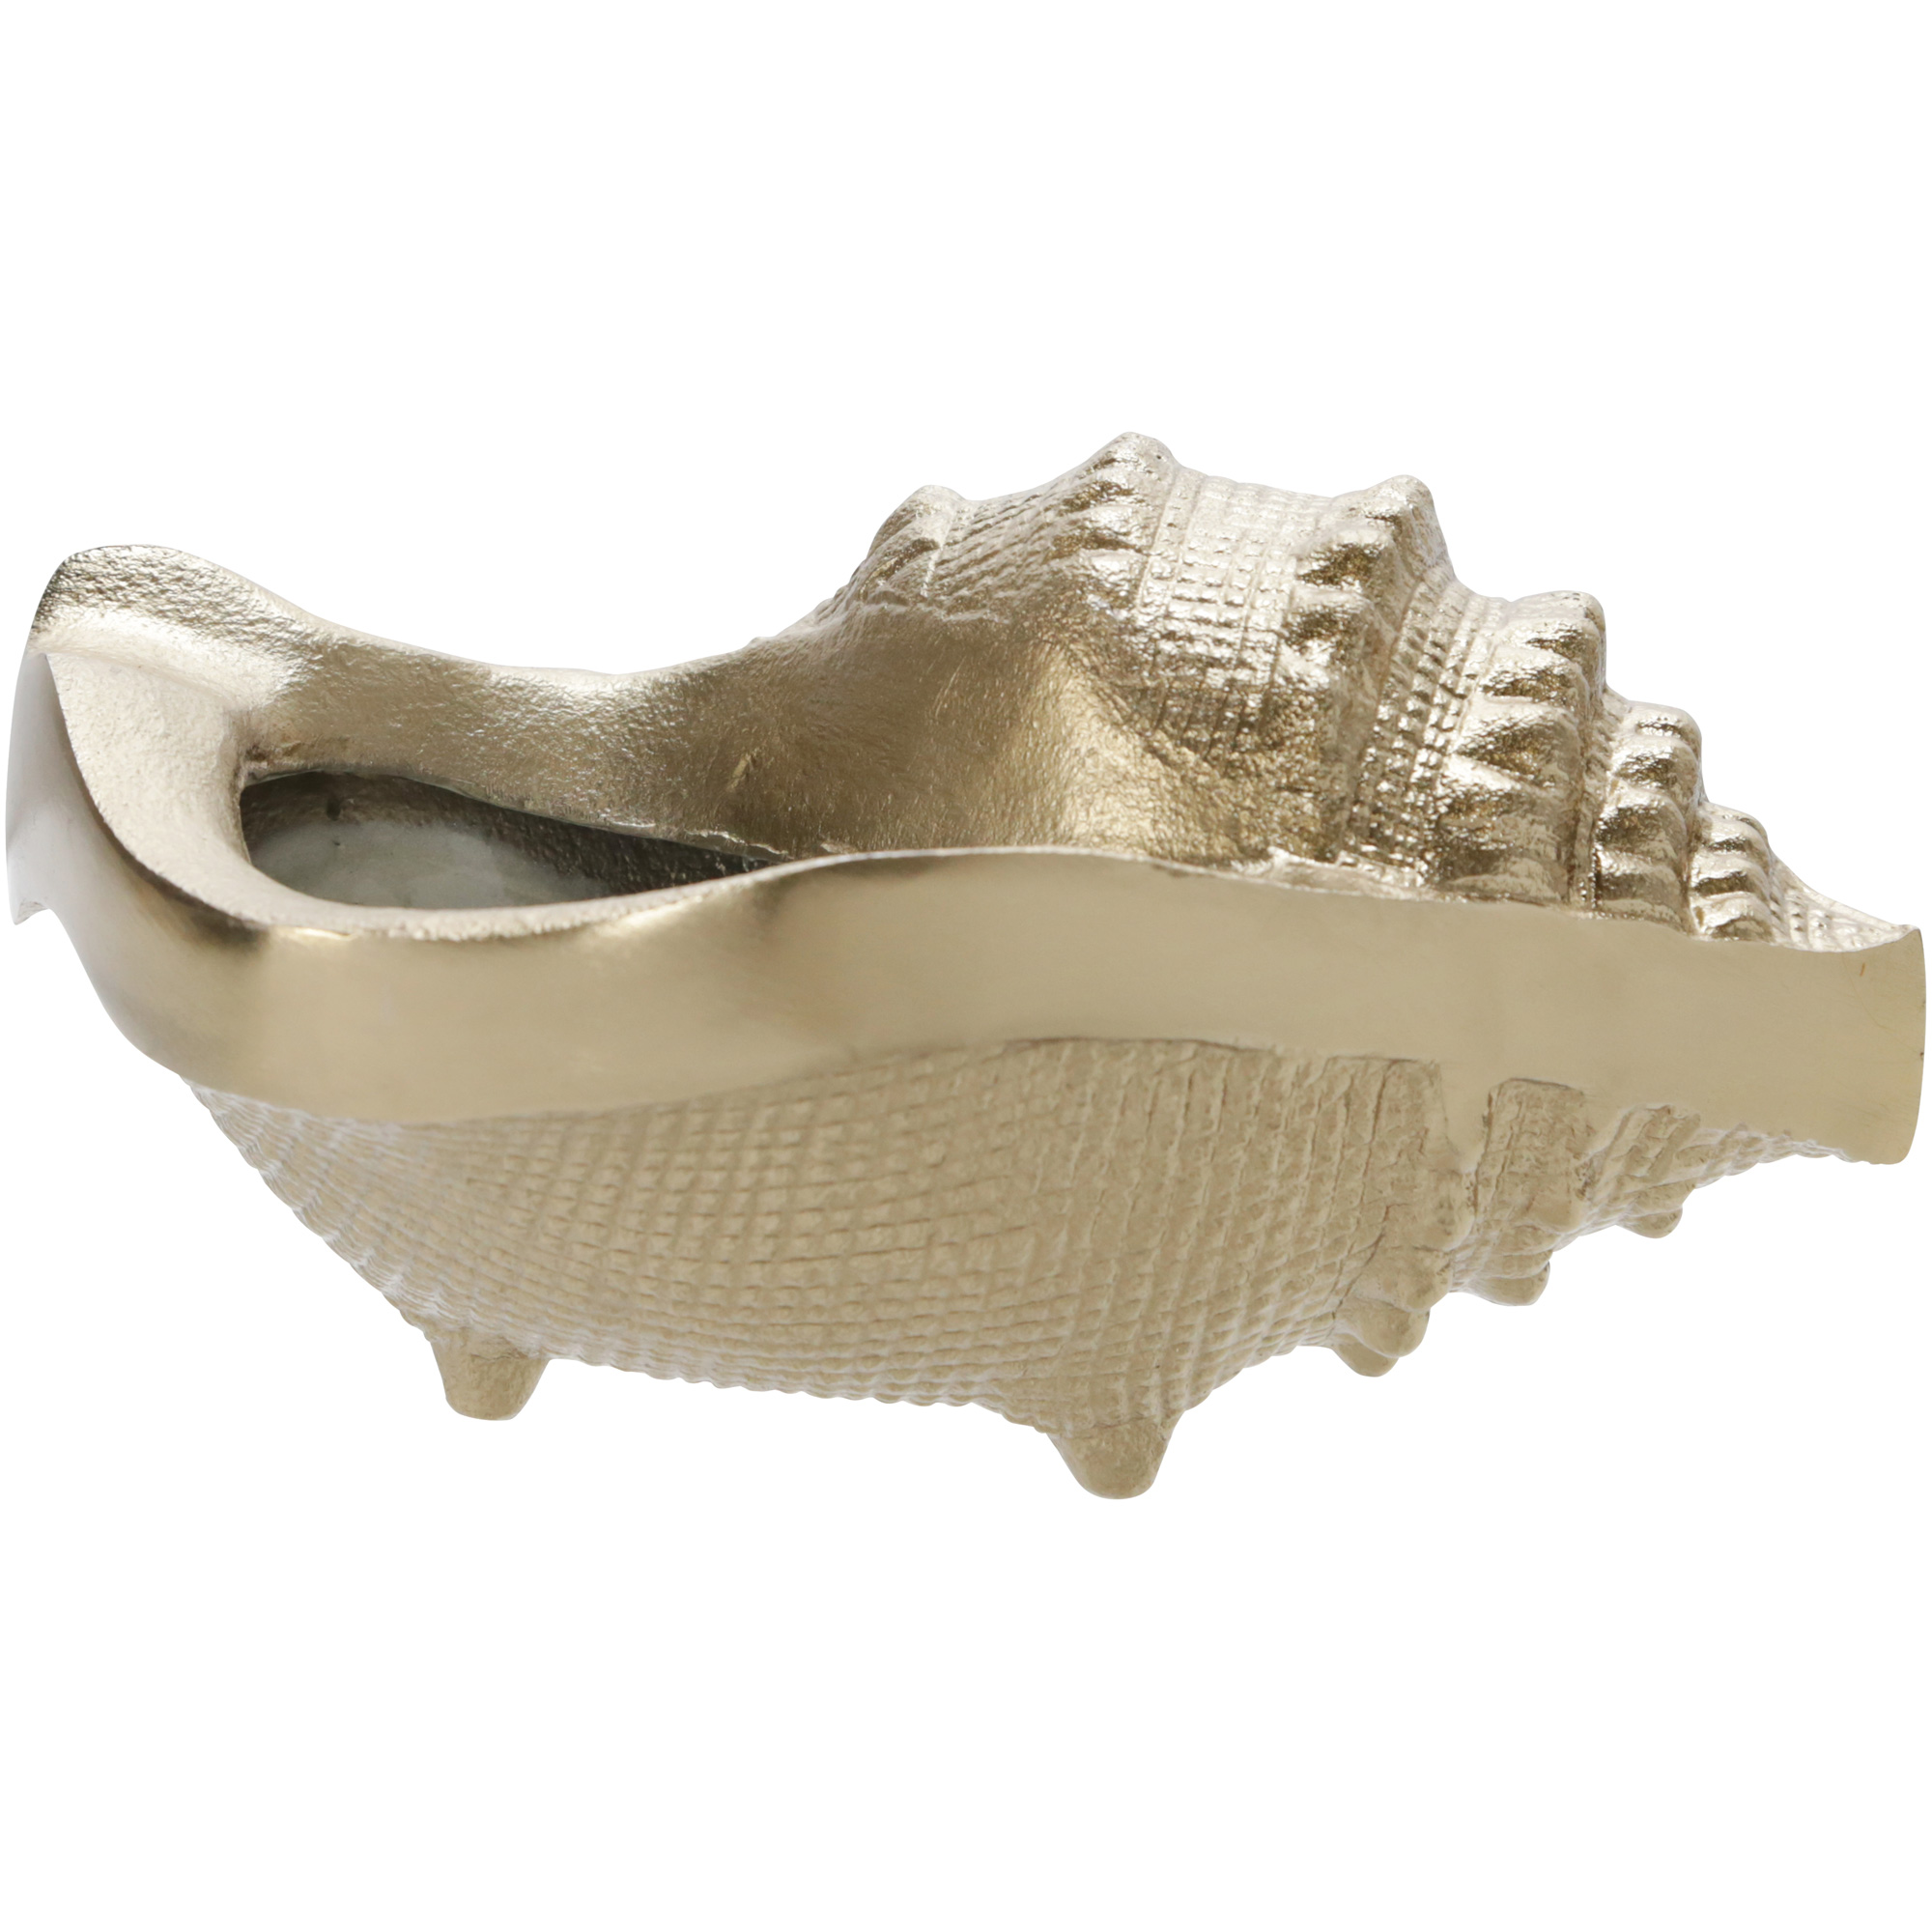 Sagebrook | Elevated Chic Champagne Sea Shell